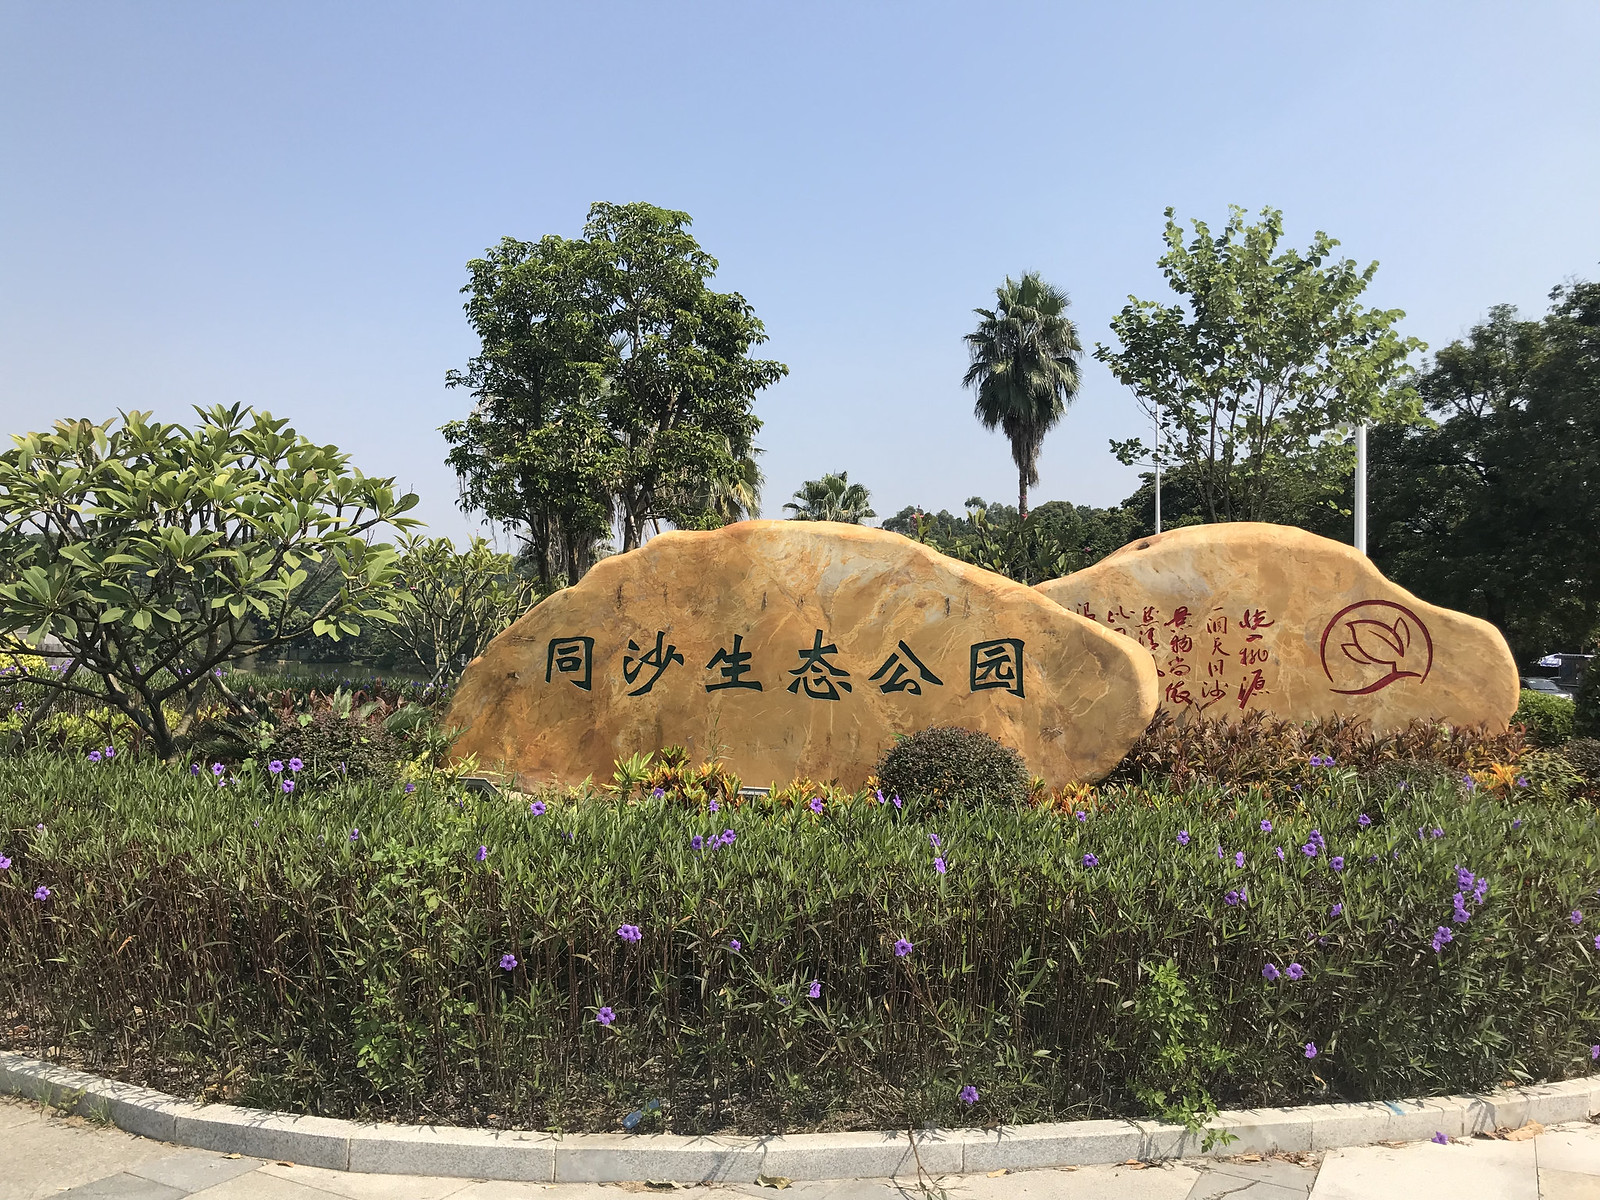 Dongguan TongSha Ecological park